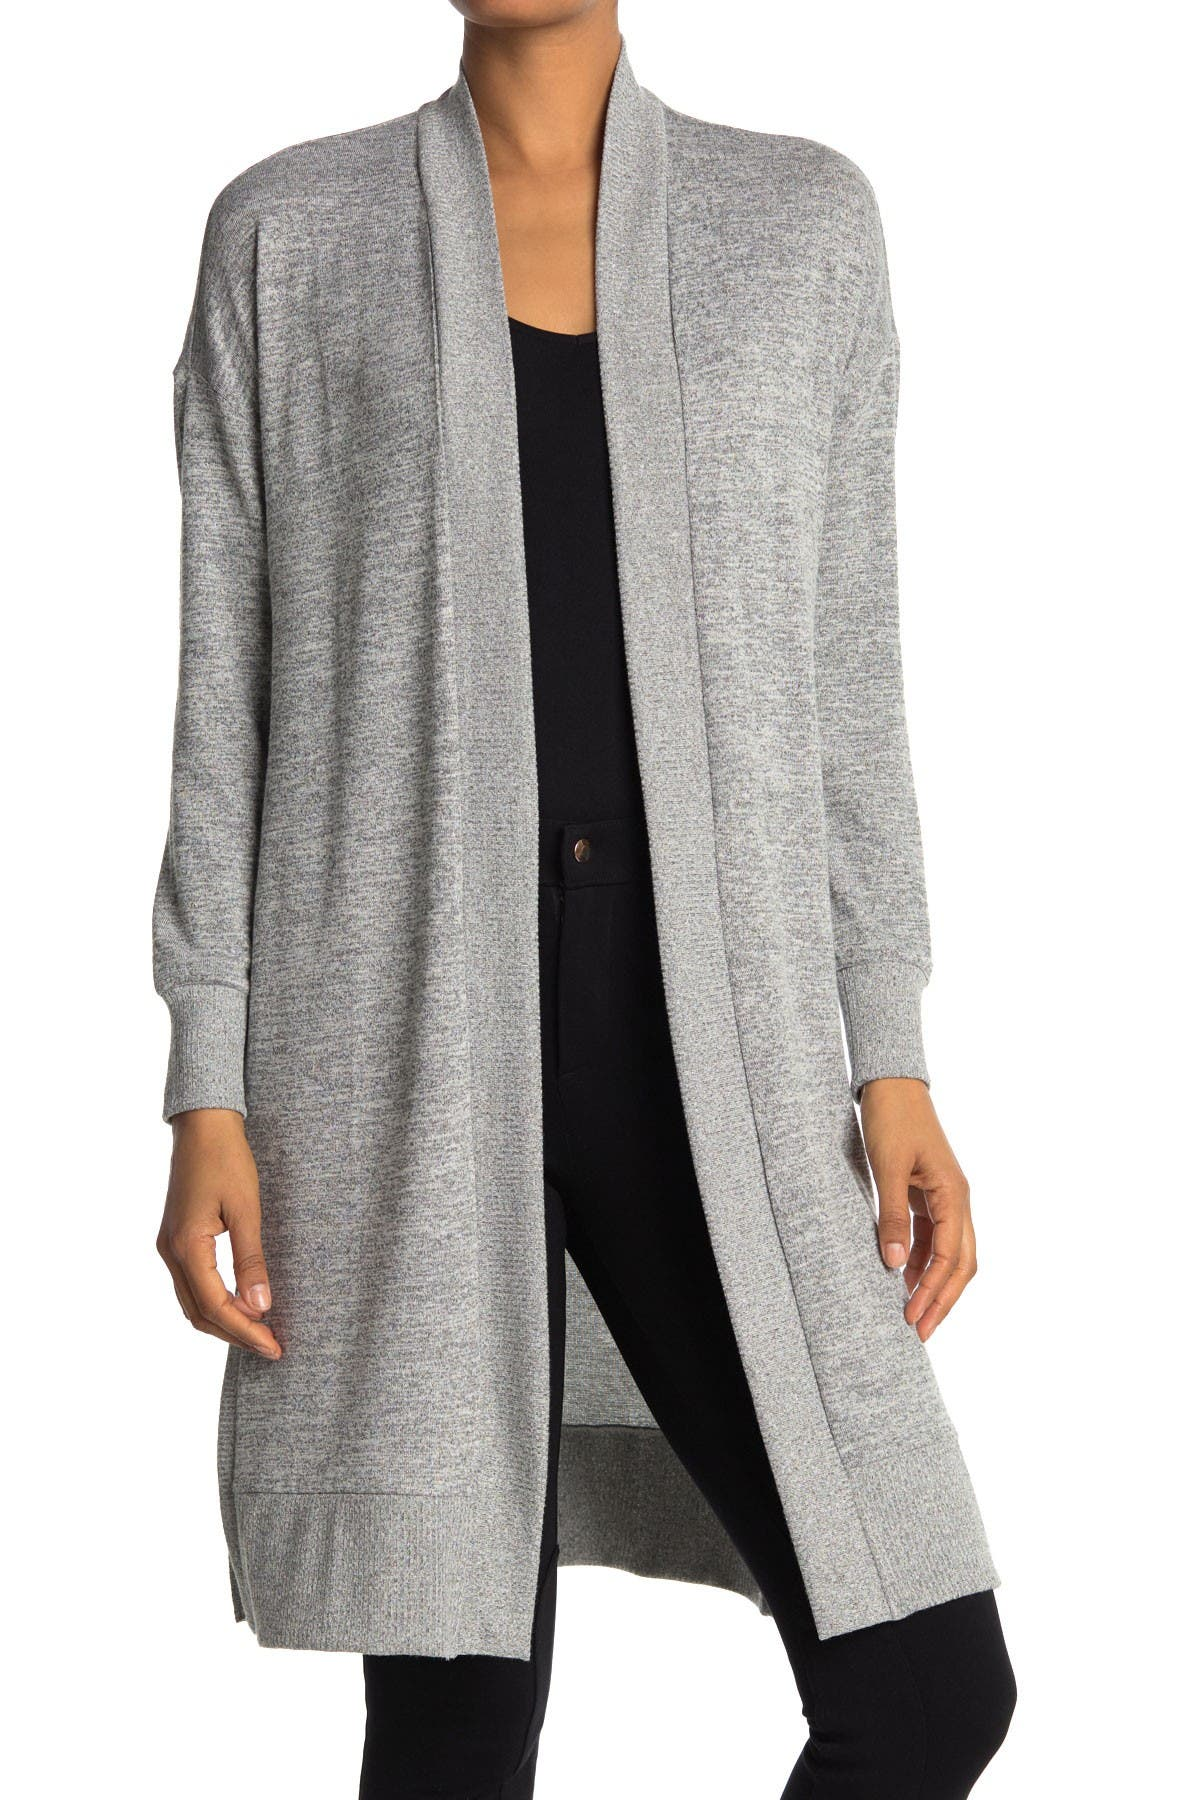 Image of Joan Vass Ribbed Knit Long Line Cardigan